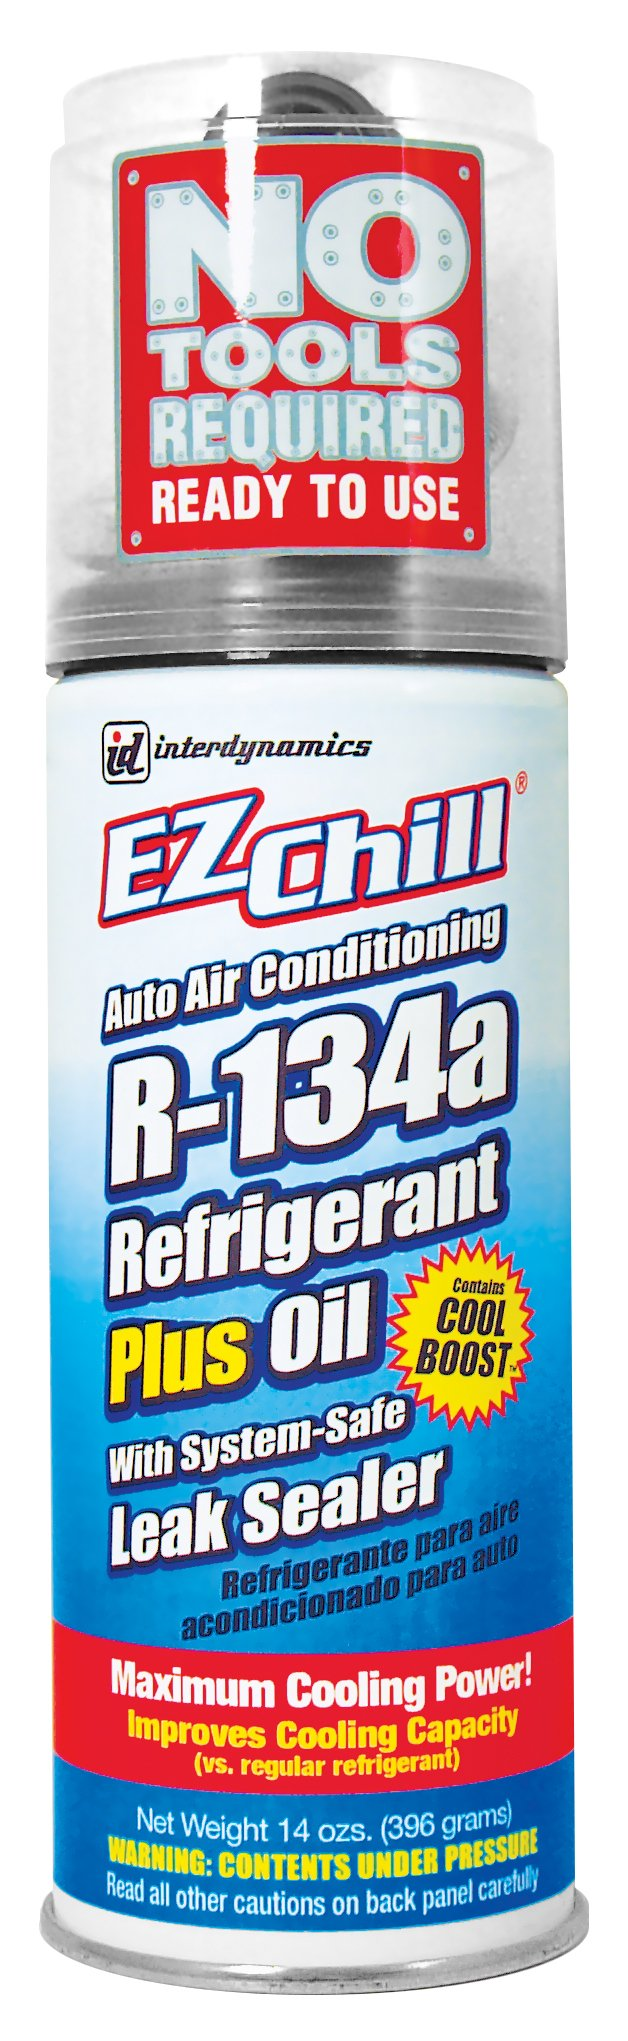 Interdynamics (SD-134CA-12PK) EZ Chill R-134a Refrigerant with Oil and Leak Sealer - 13 oz., (Pack of 12)